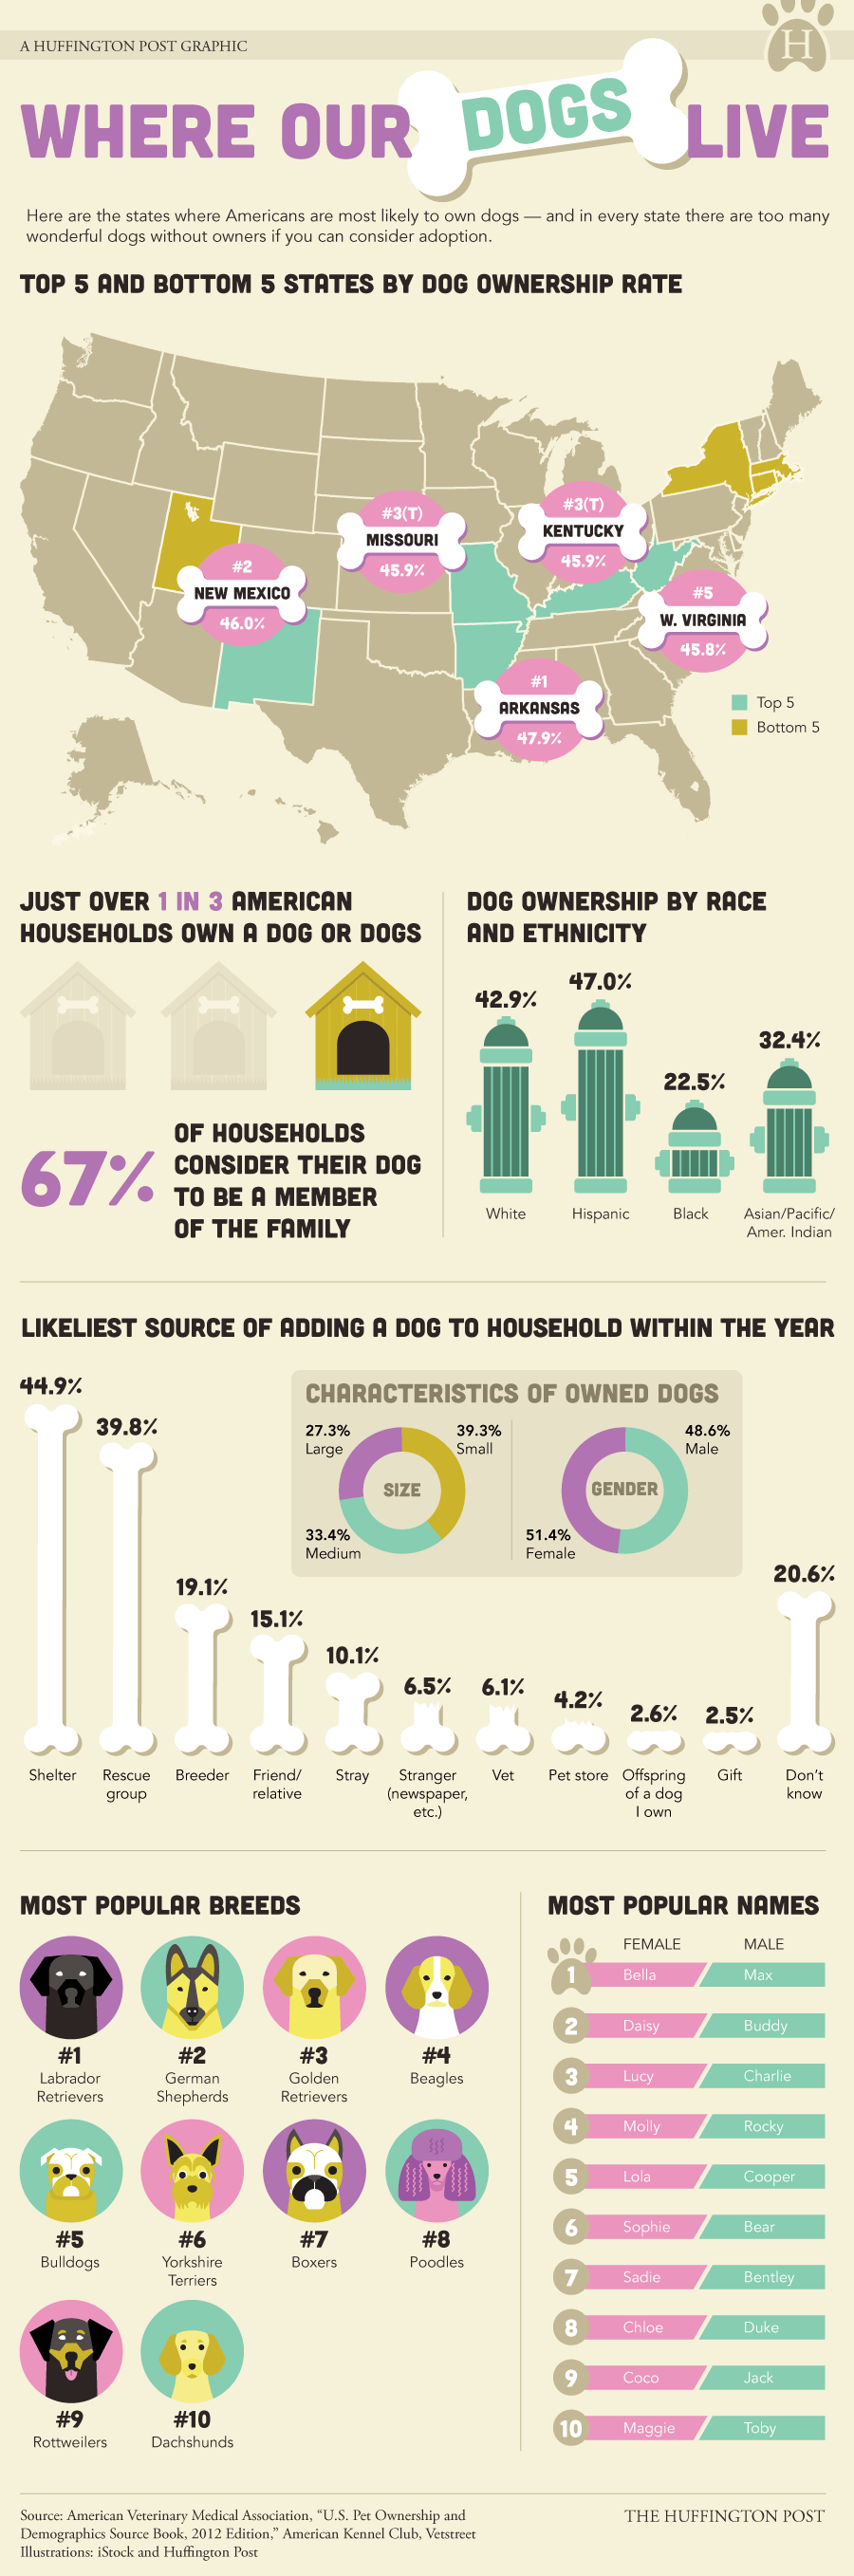 United States Dog Ownership Rates